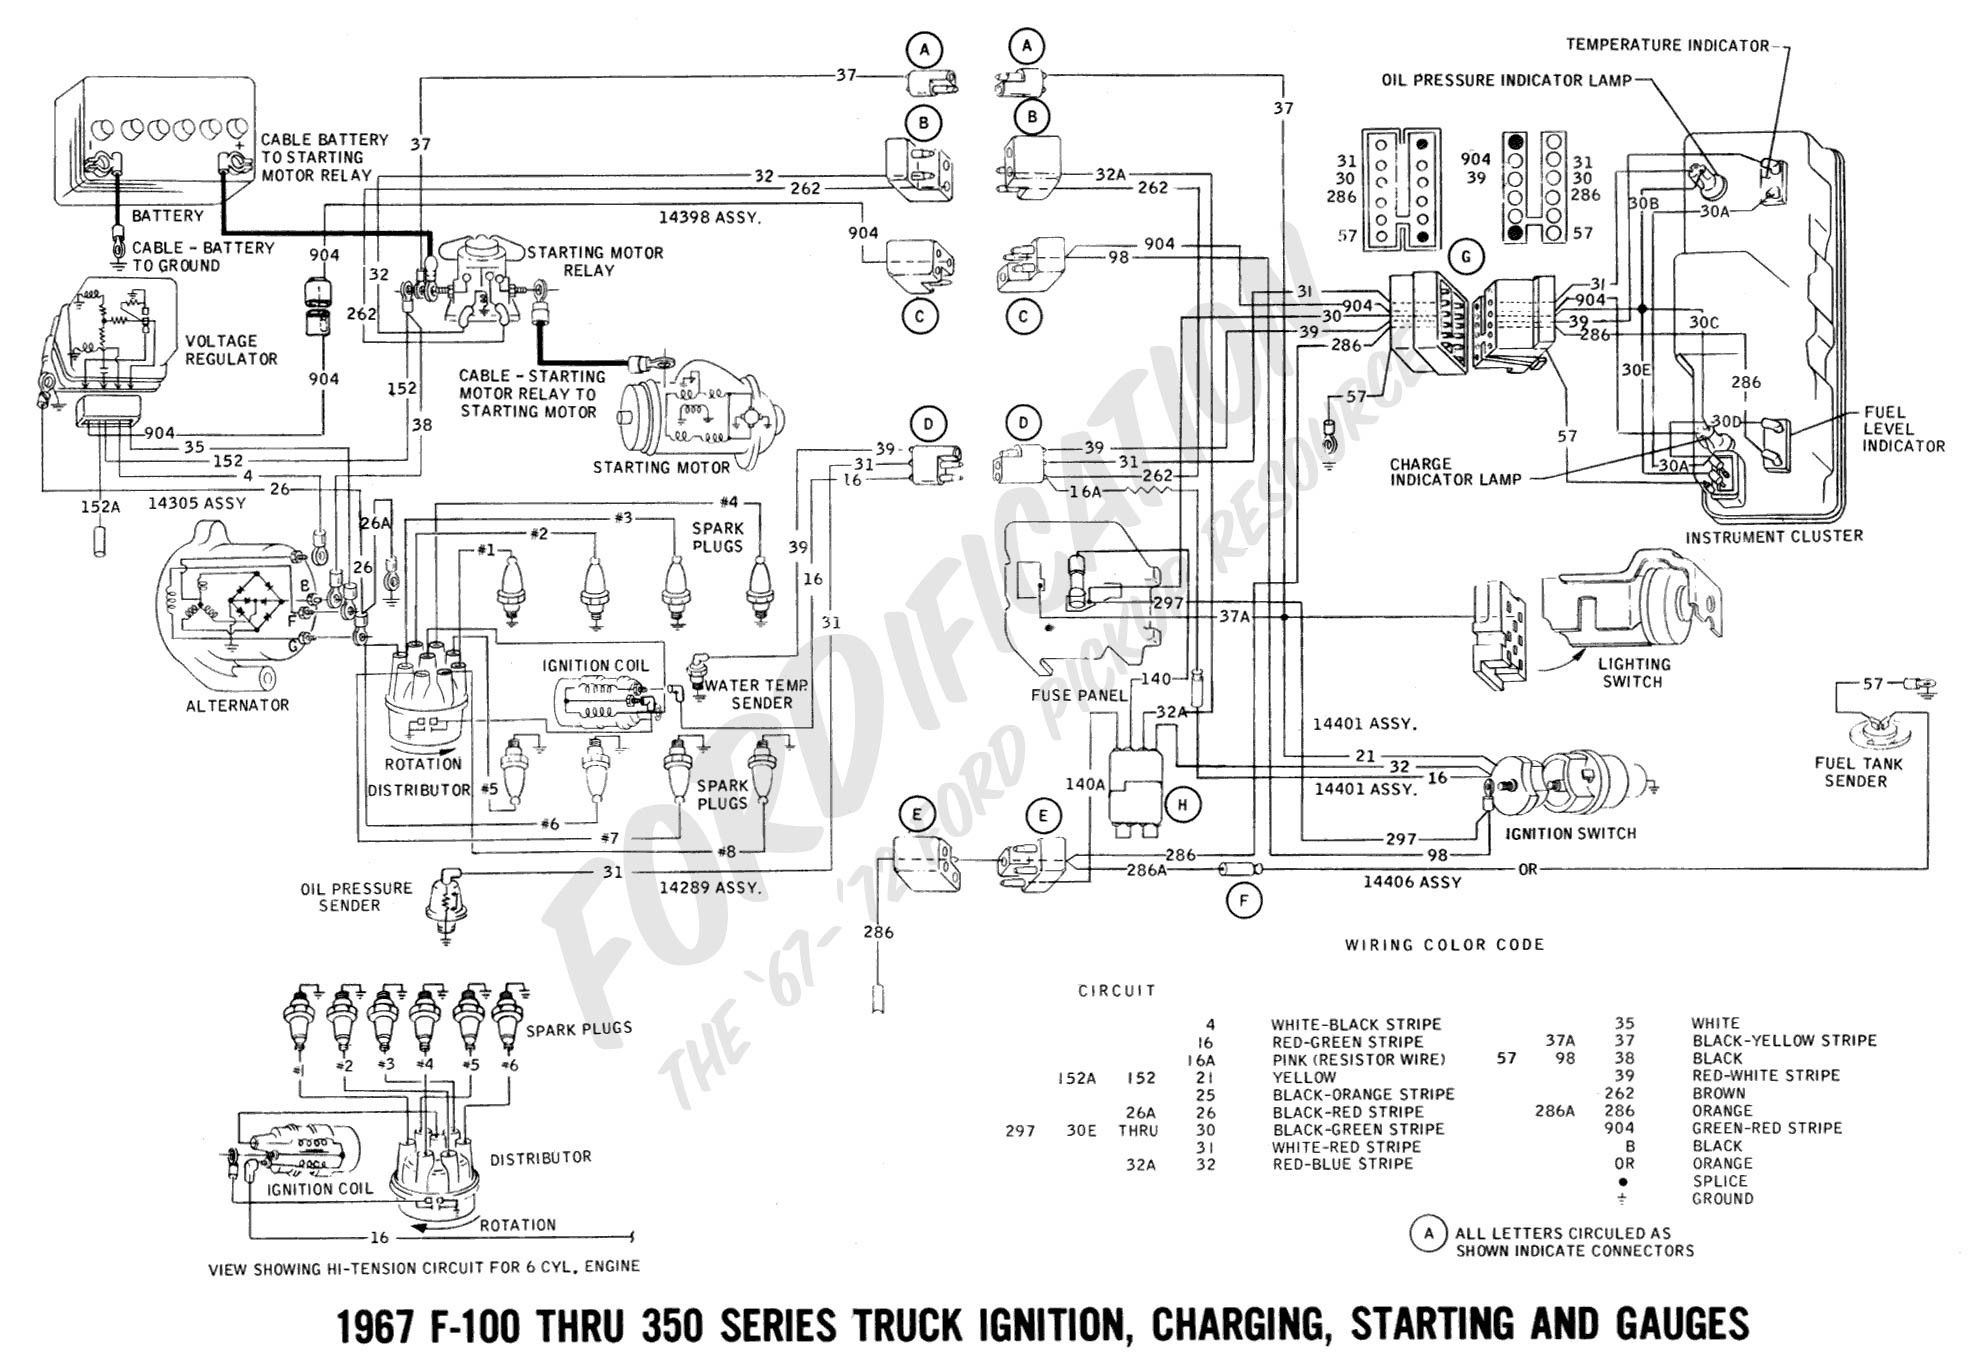 Interior Wire Diagram For Corvette Full Hd Maps Locations 1965 Chevy C10  Wiring-Diagram 68 Mustang Dome Light Wiring Diagram